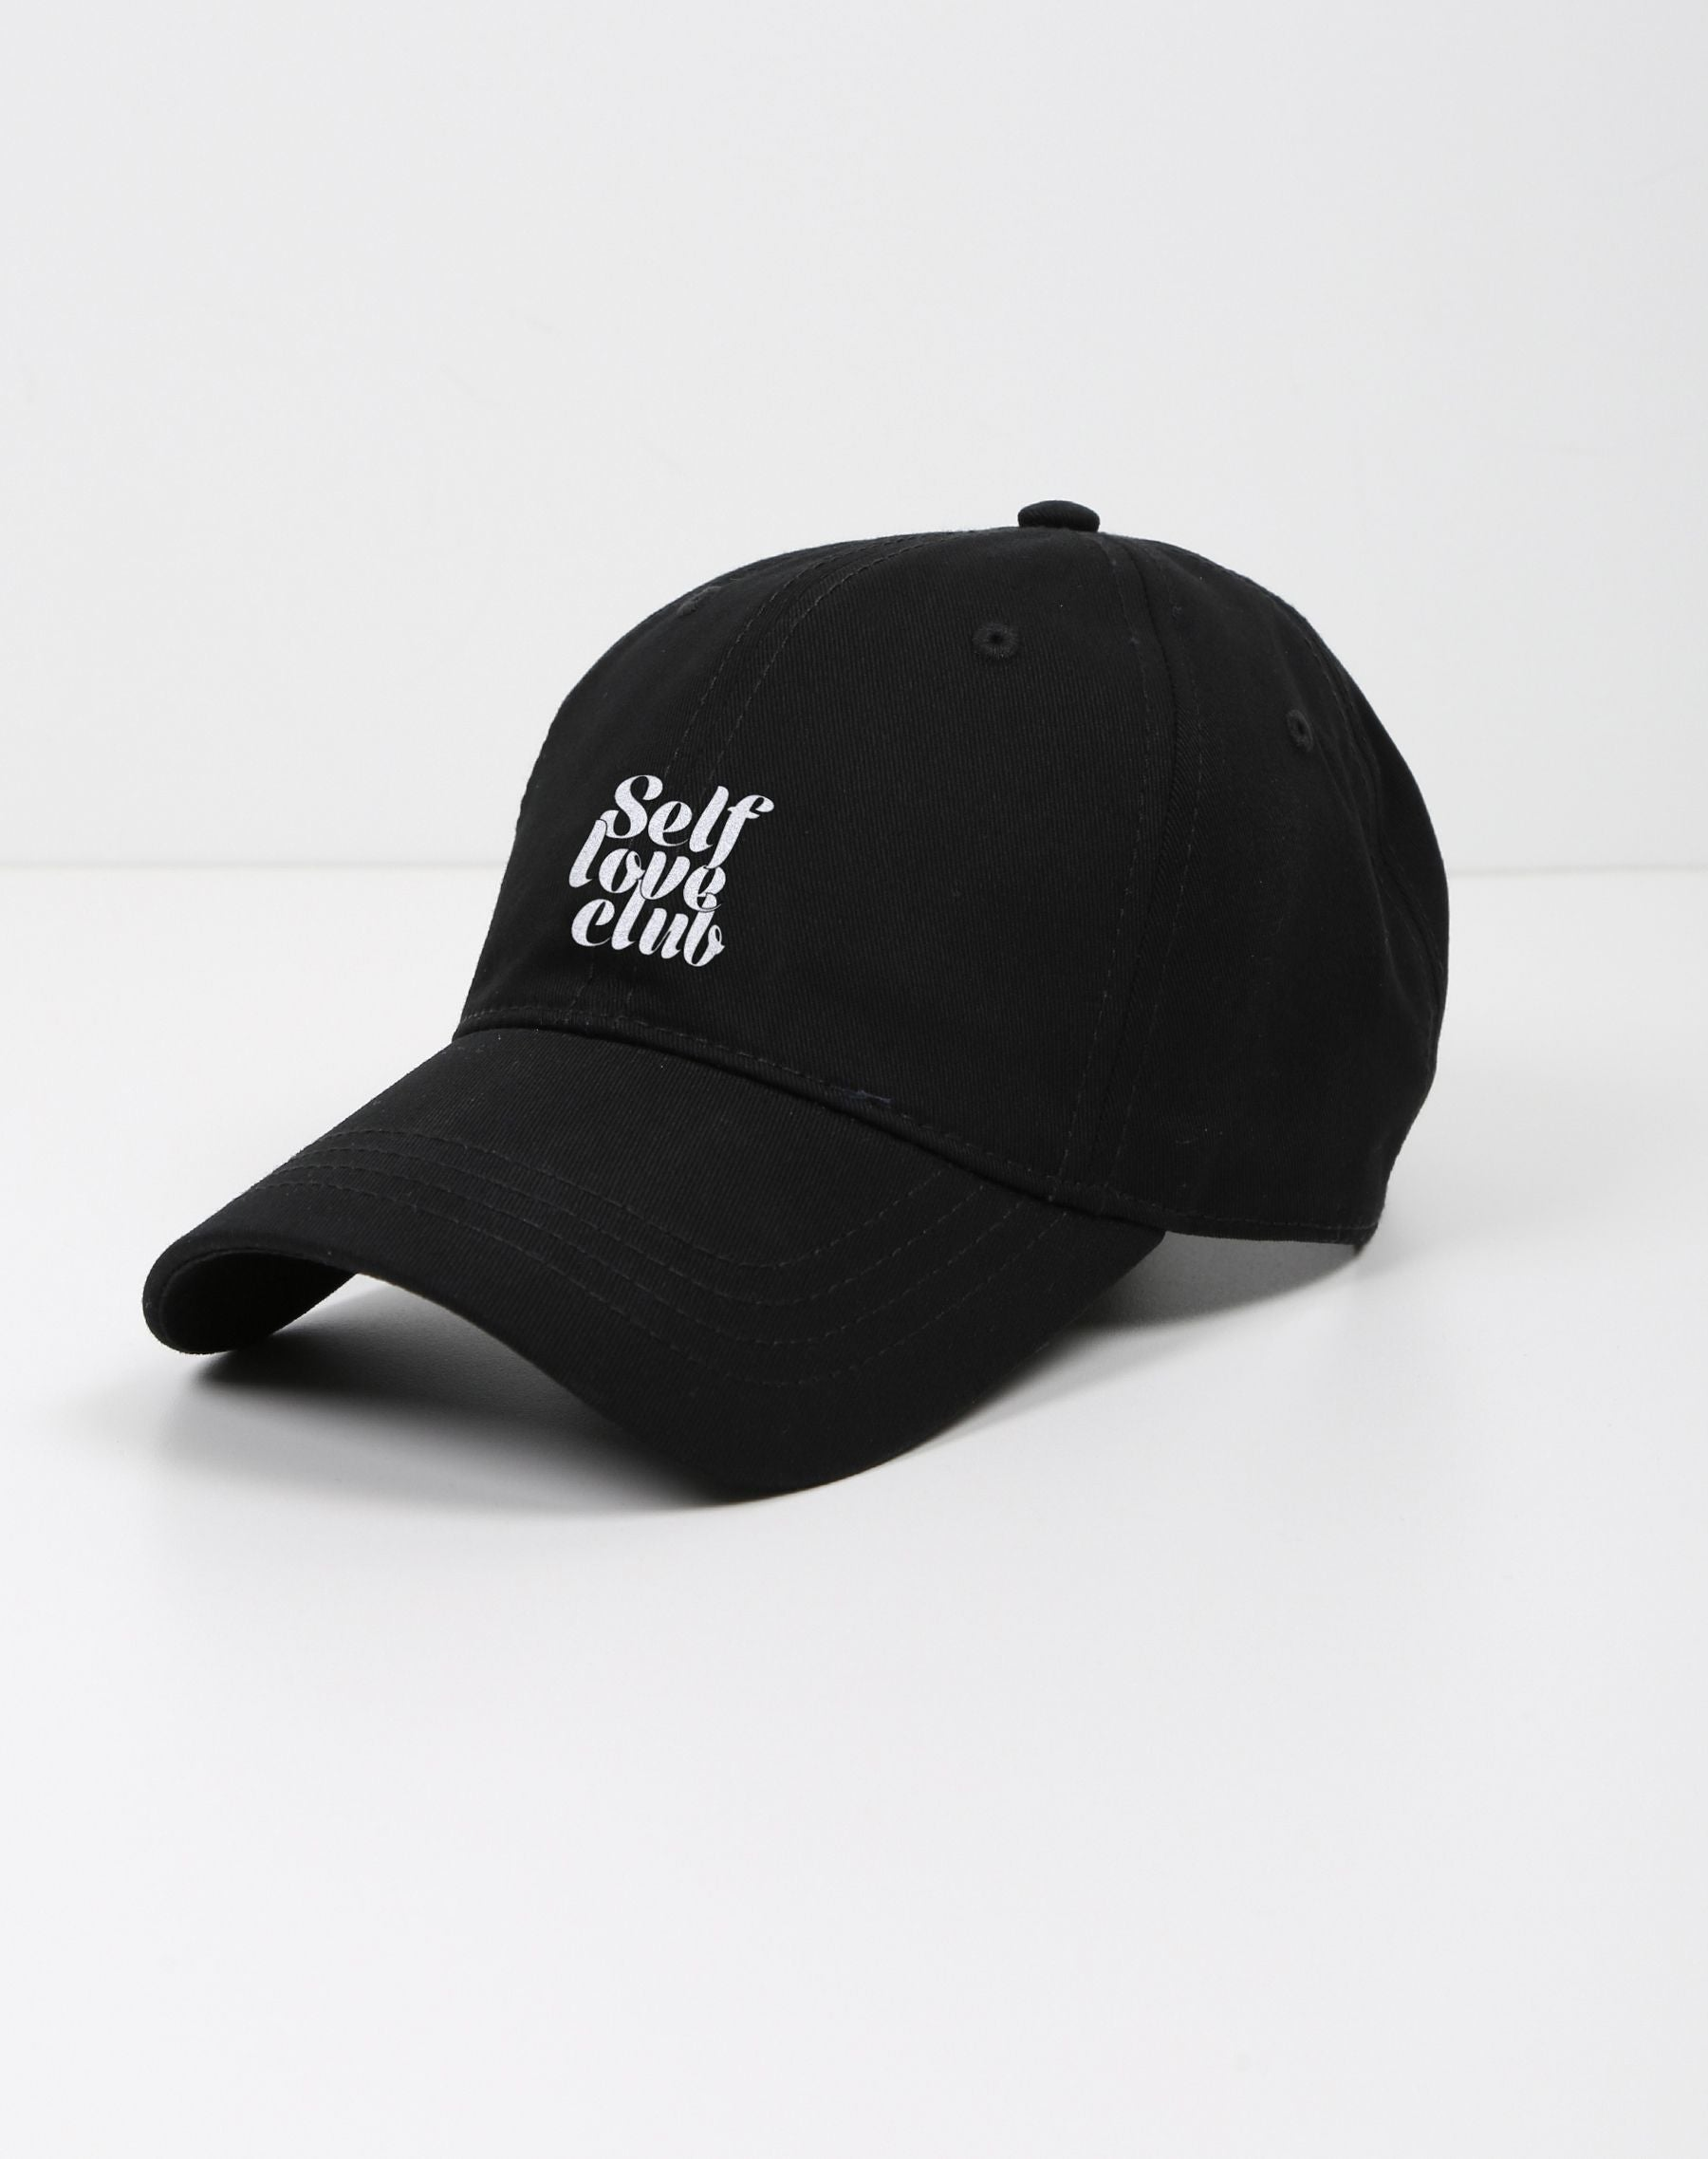 This is a photo of a the self love club baseball cap in black.